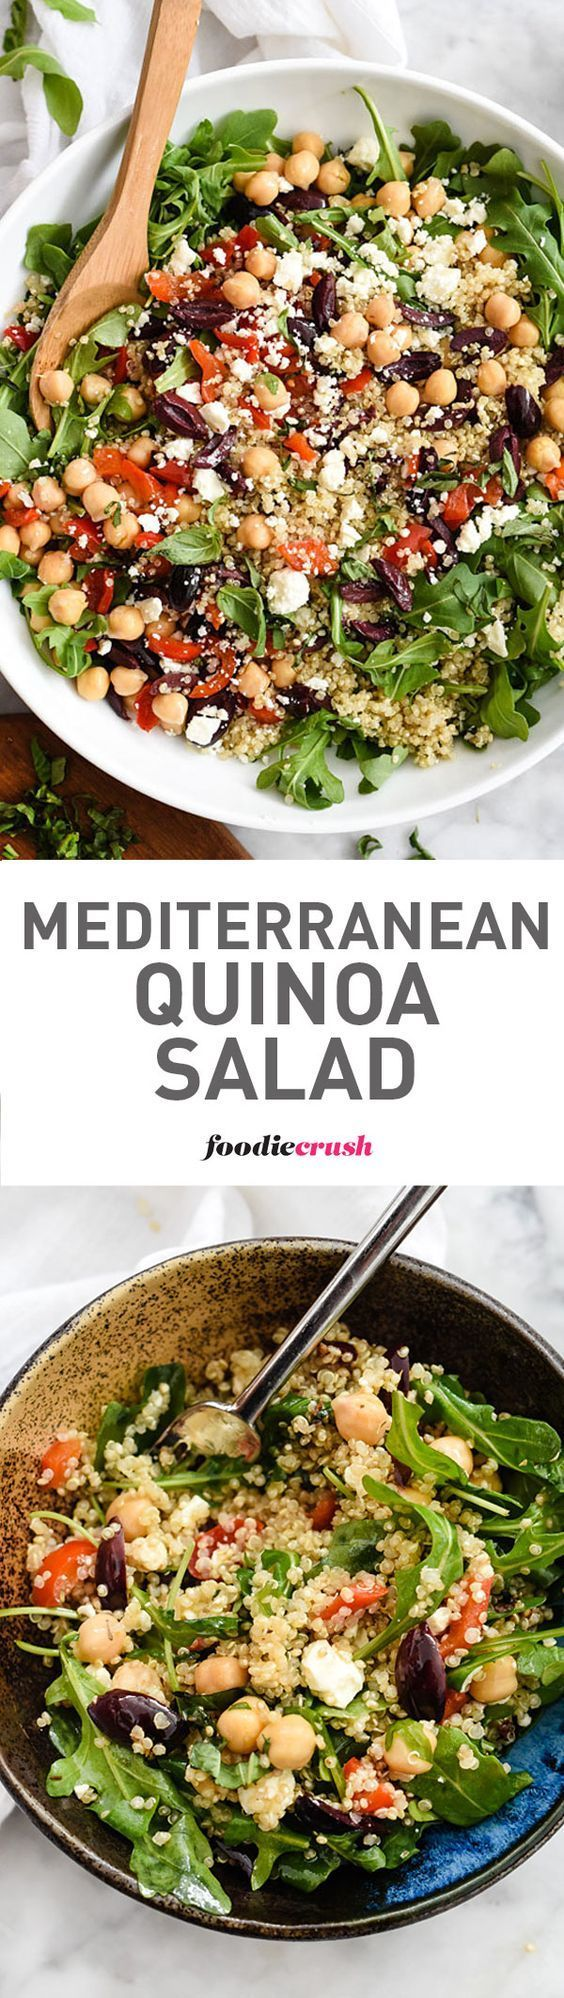 This healthy quinoa salad is one of the easiest you'll make thanks to staples from your fridge and pantry | http://foodiecrush.com